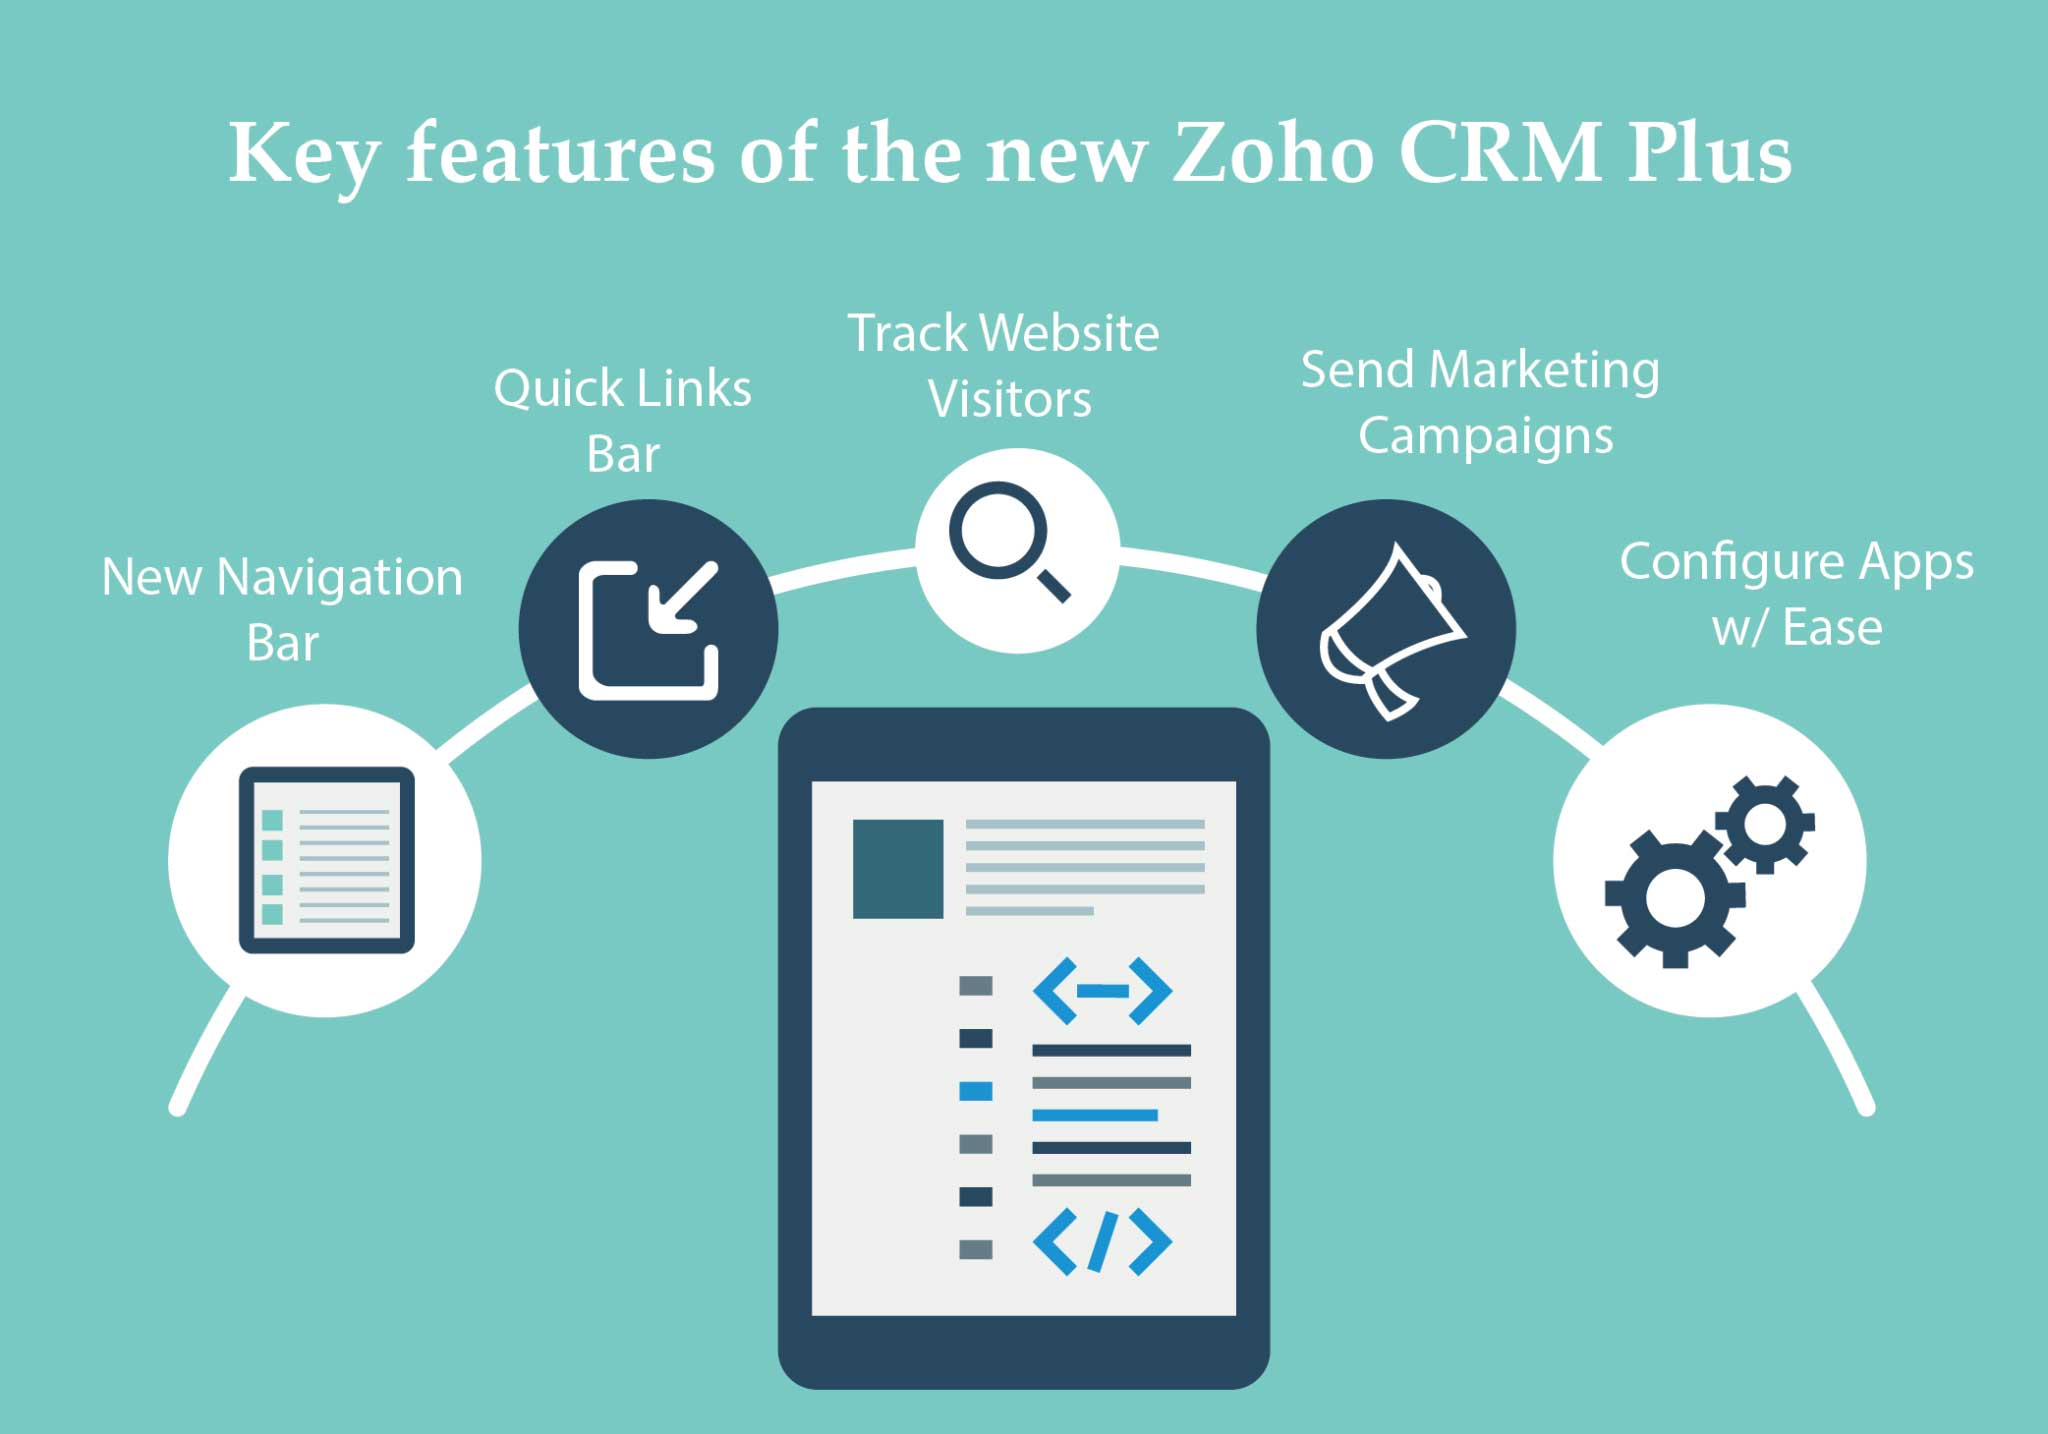 Zoho CRM Plus is now released